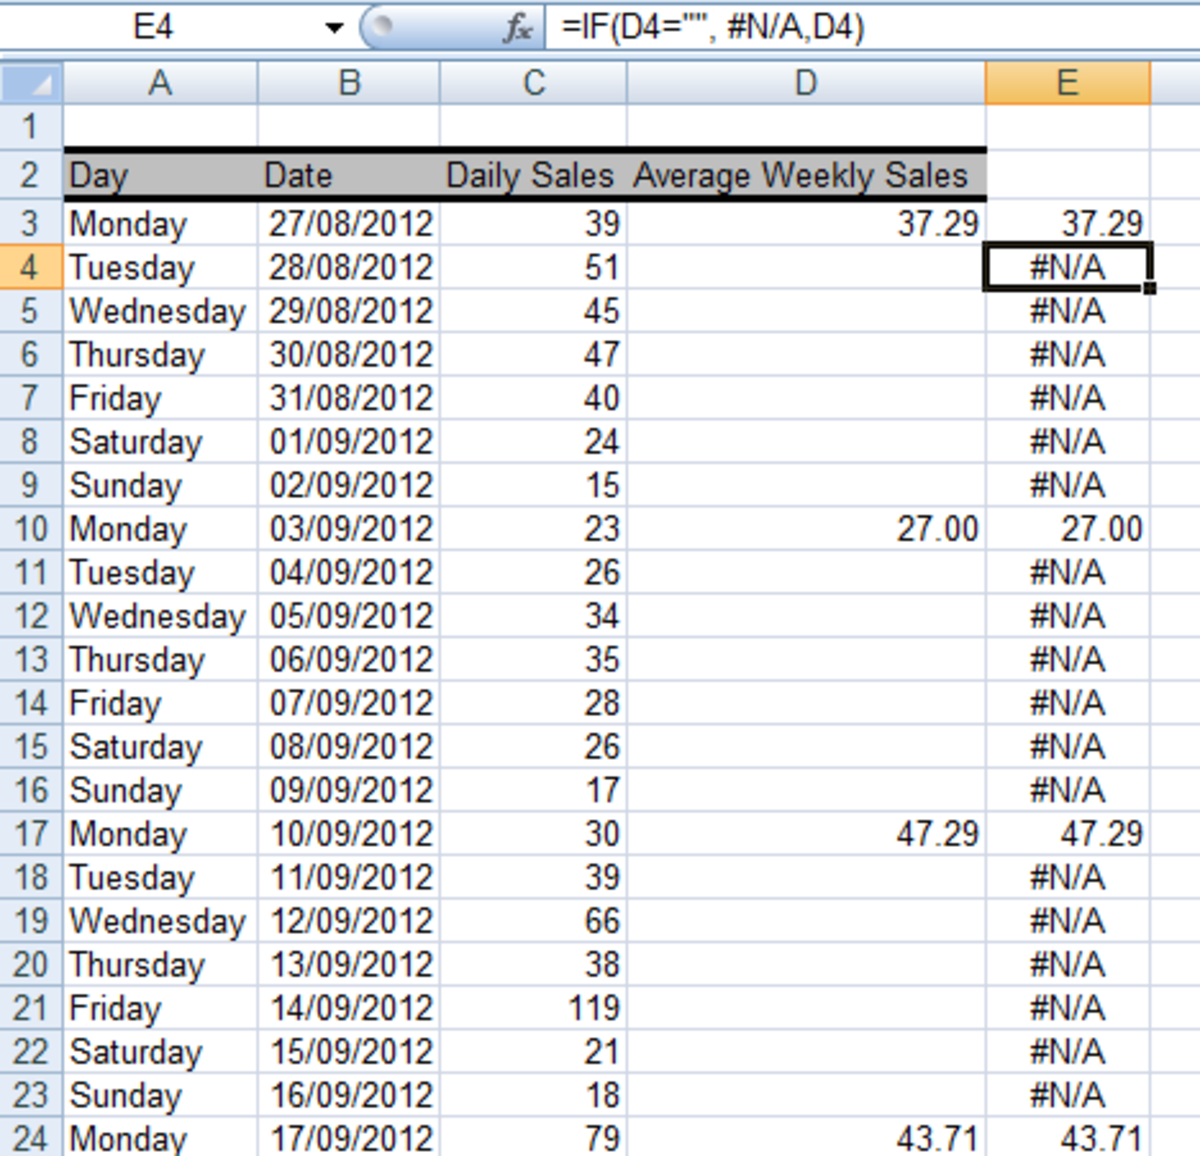 Ediblewildsus  Mesmerizing How To Get Excel  And  To Ignore Empty Cells In A Chart Or  With Licious Using The If Function In A Formula To Convert Empty Cells To Na With Appealing Create An Array In Excel Also Hlookup Excel  In Addition What Does Excel And Excel Match If As Well As Excel Format Cell Based On Another Cell Additionally Excel Hex From Turbofuturecom With Ediblewildsus  Licious How To Get Excel  And  To Ignore Empty Cells In A Chart Or  With Appealing Using The If Function In A Formula To Convert Empty Cells To Na And Mesmerizing Create An Array In Excel Also Hlookup Excel  In Addition What Does Excel From Turbofuturecom